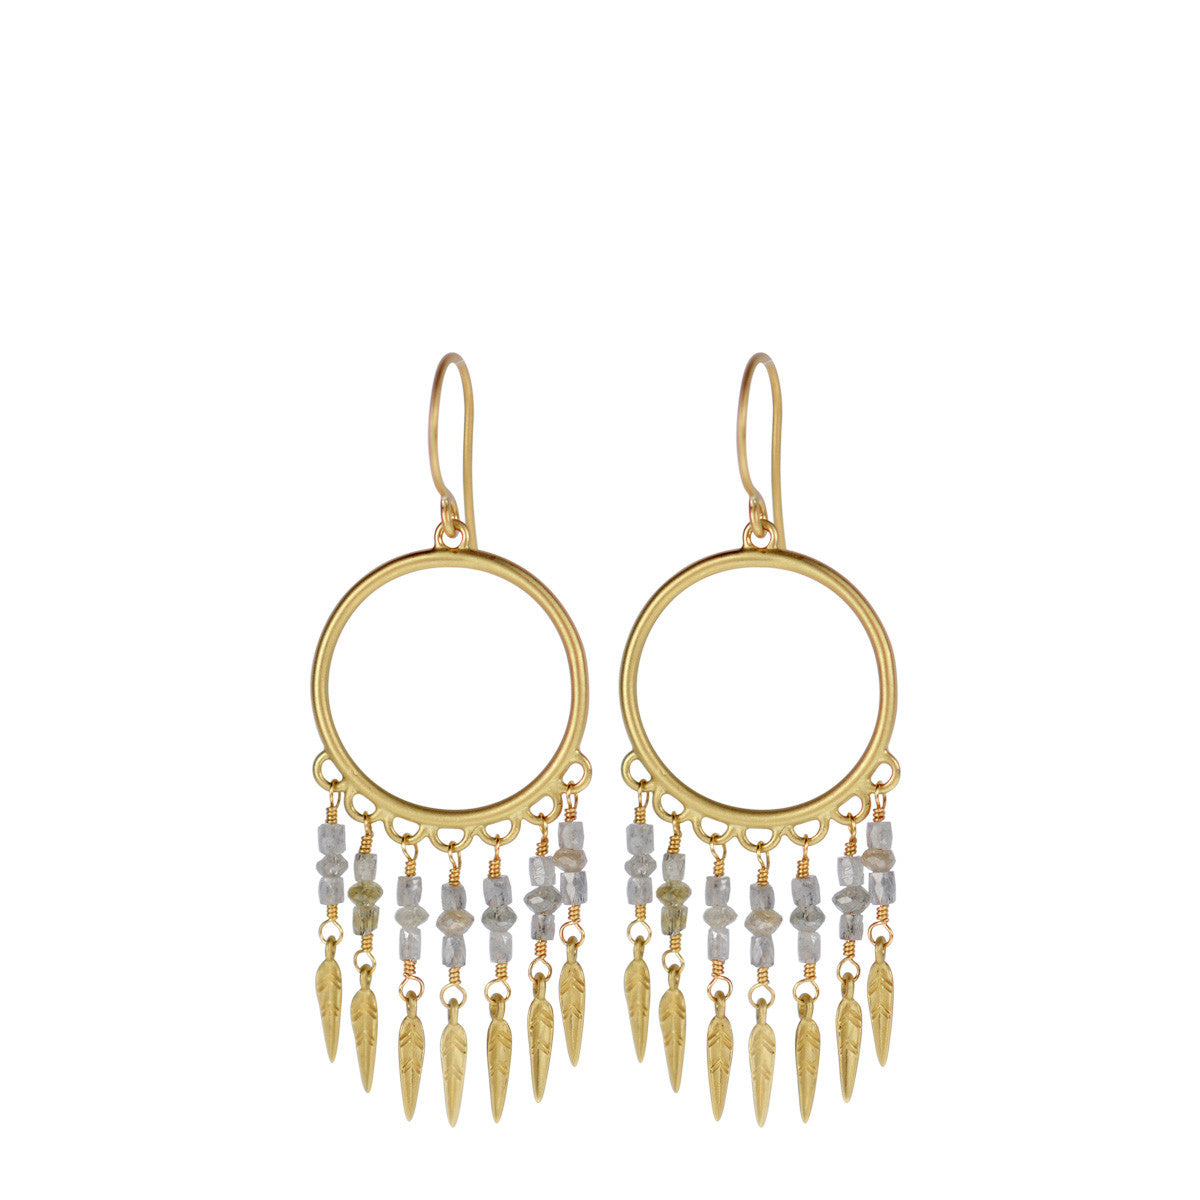 18K Gold Small Grey Diamond Dream Catcher Earrings